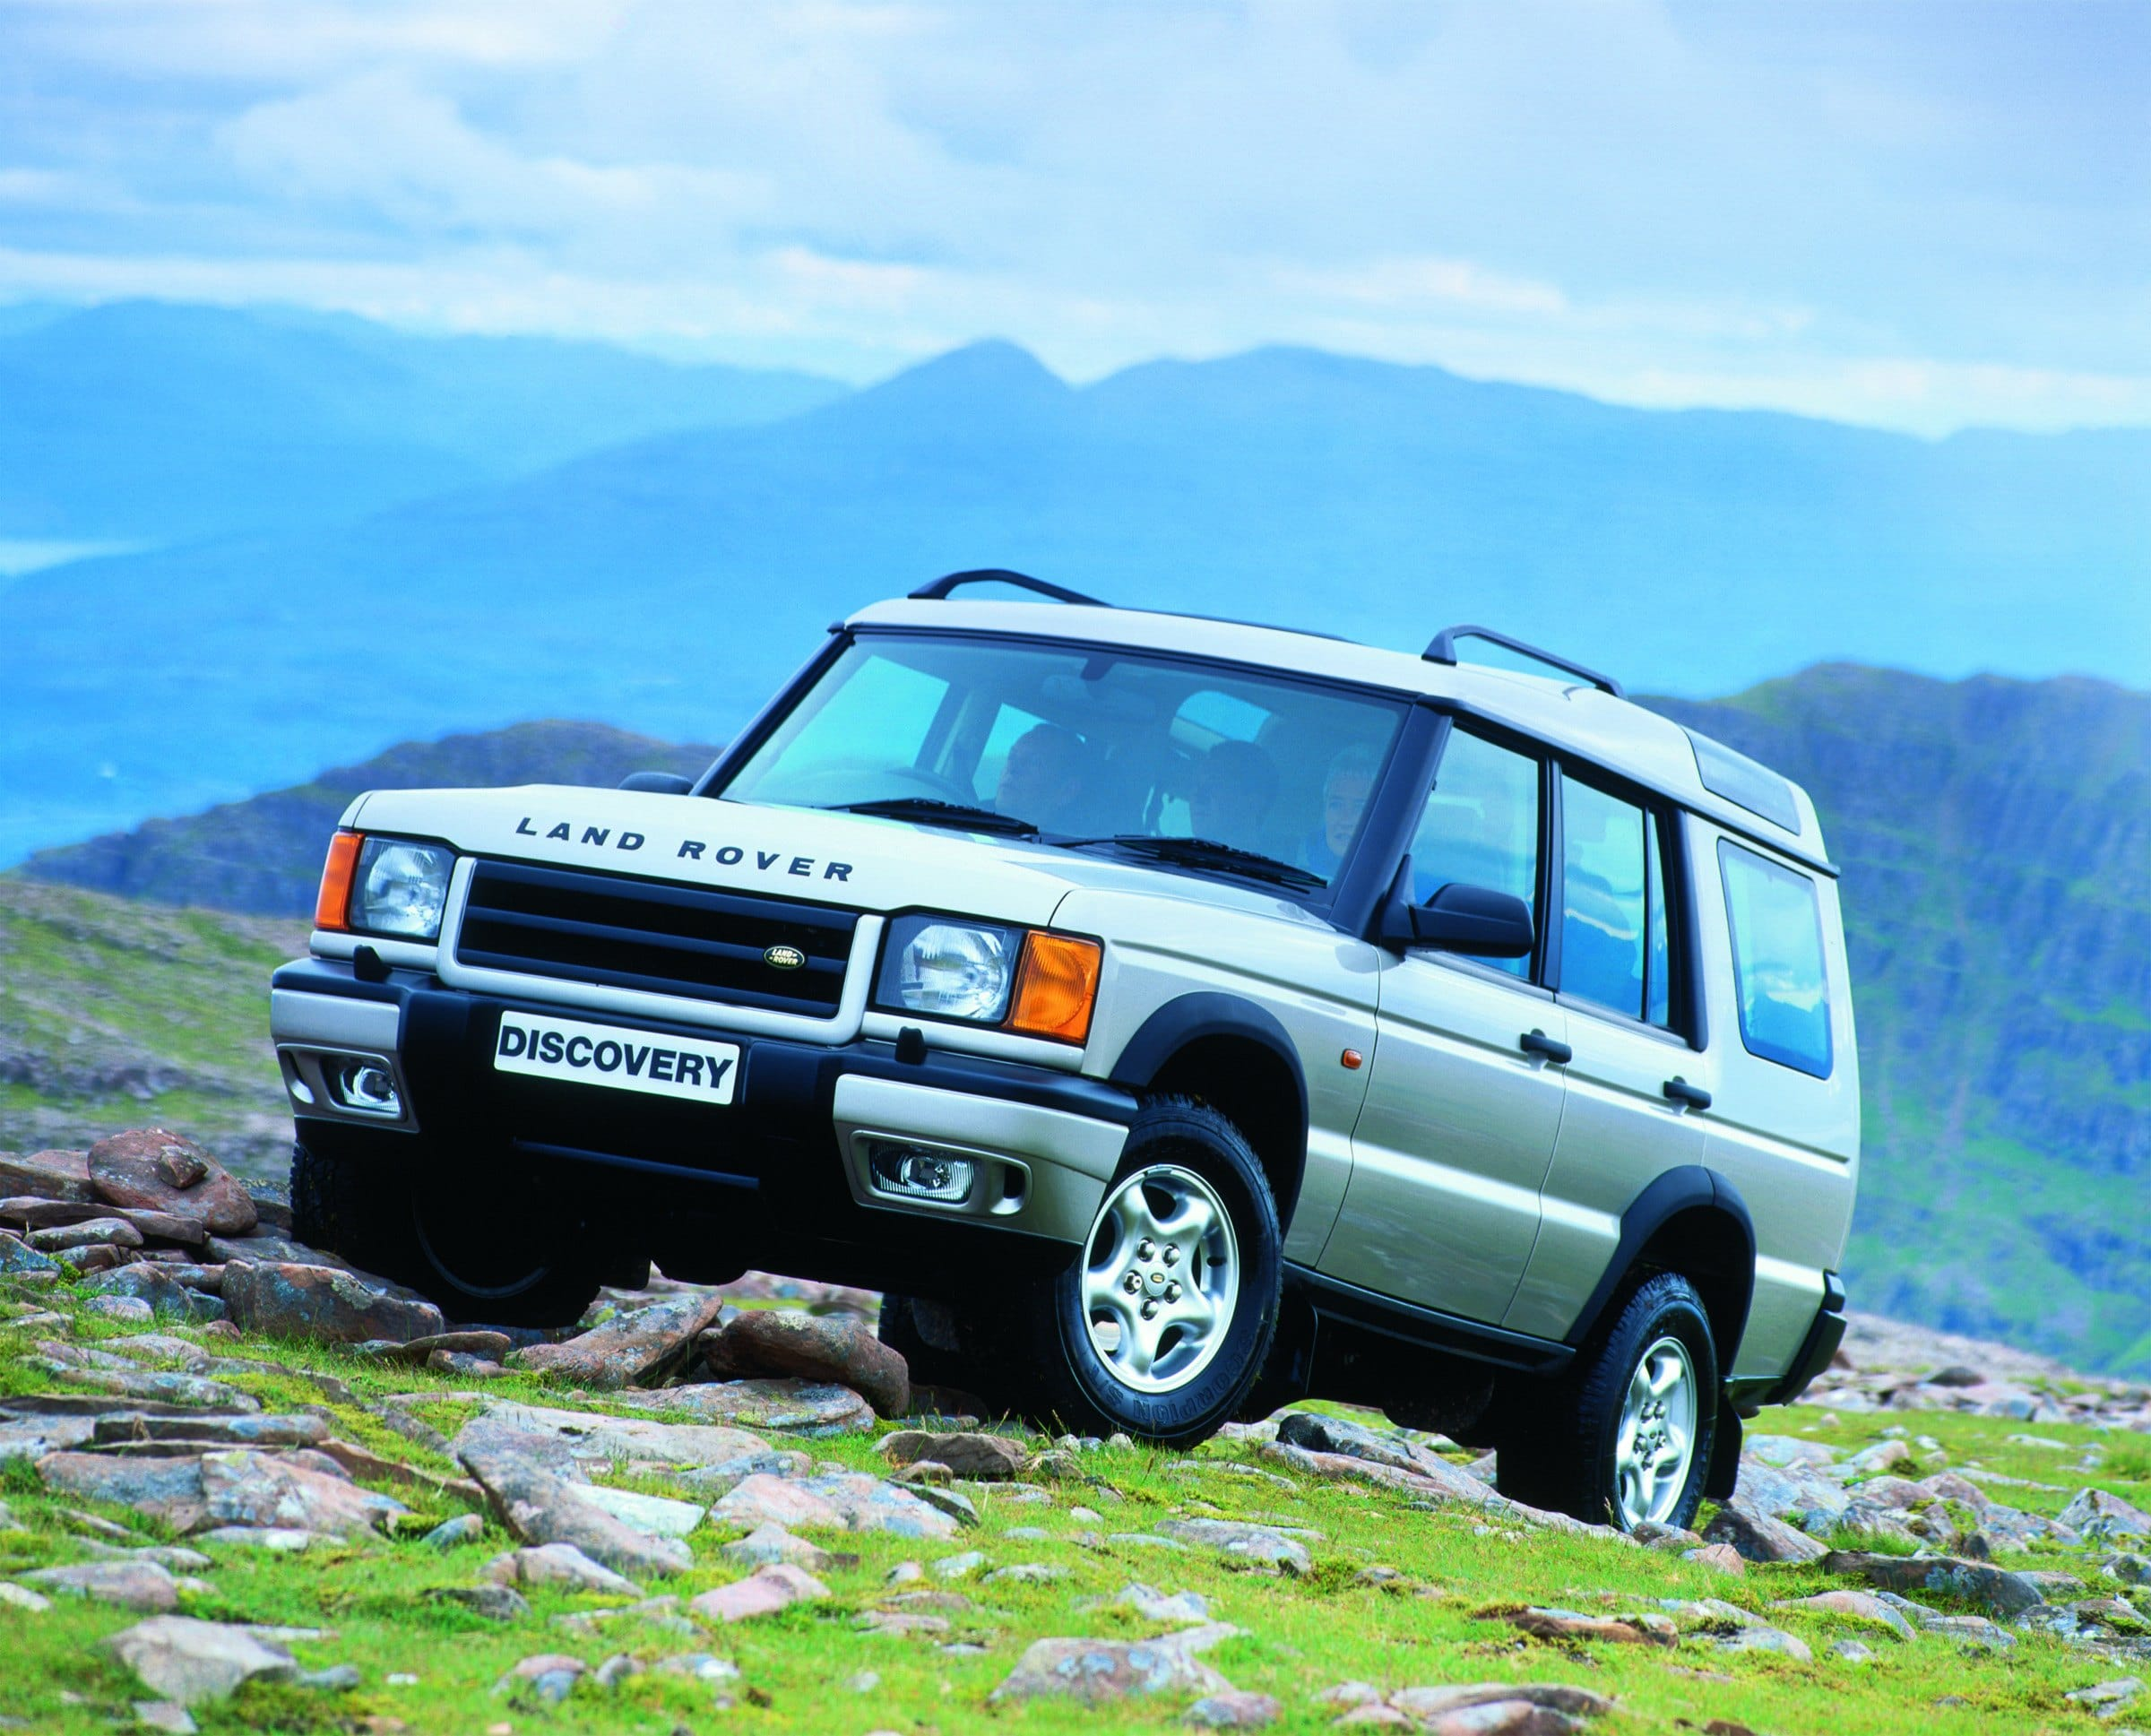 Land Rover, Land Rover Discovery, Discovery, TD5, V8, 4x4, Land Rover buying guide, motoring, automotive, classic car, retro car, motoring, automotive, not2grand, www.not2grand.co.uk, adrian flux, featured, ebay, ebay motors, autotrader